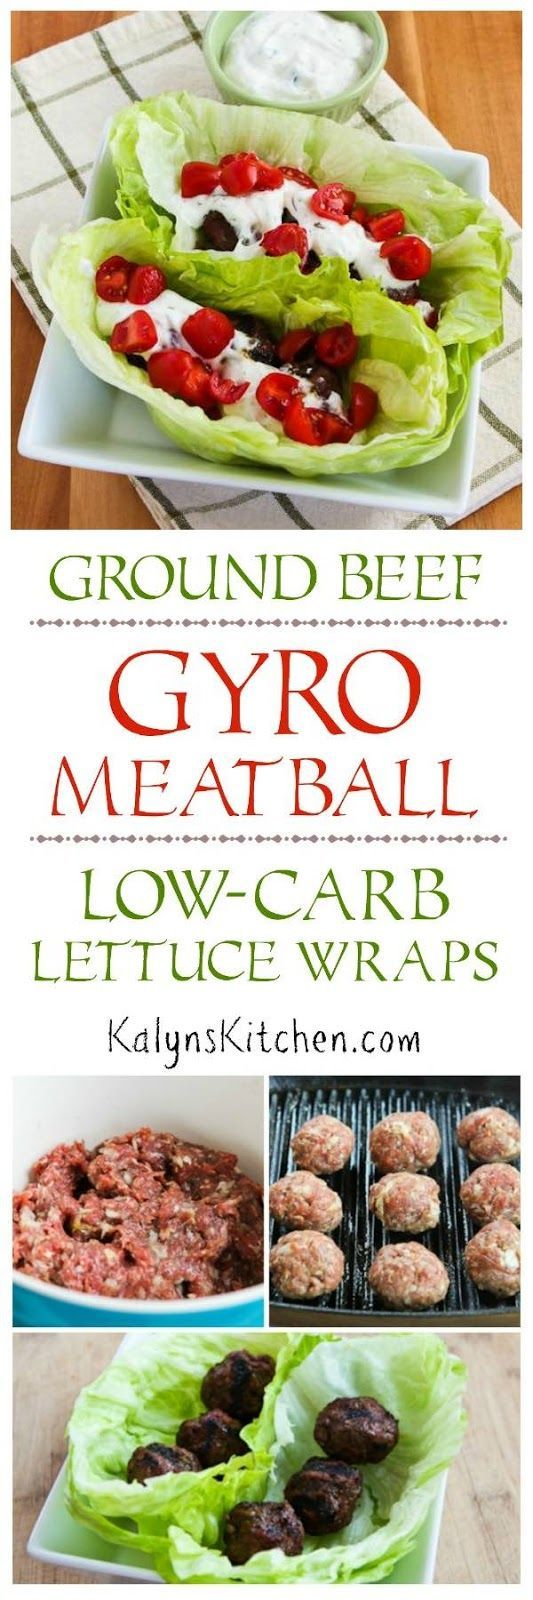 Ground Beef Gyro Meatball Low-Carb Lettuce Wraps with Tzatziki and Tomatoes